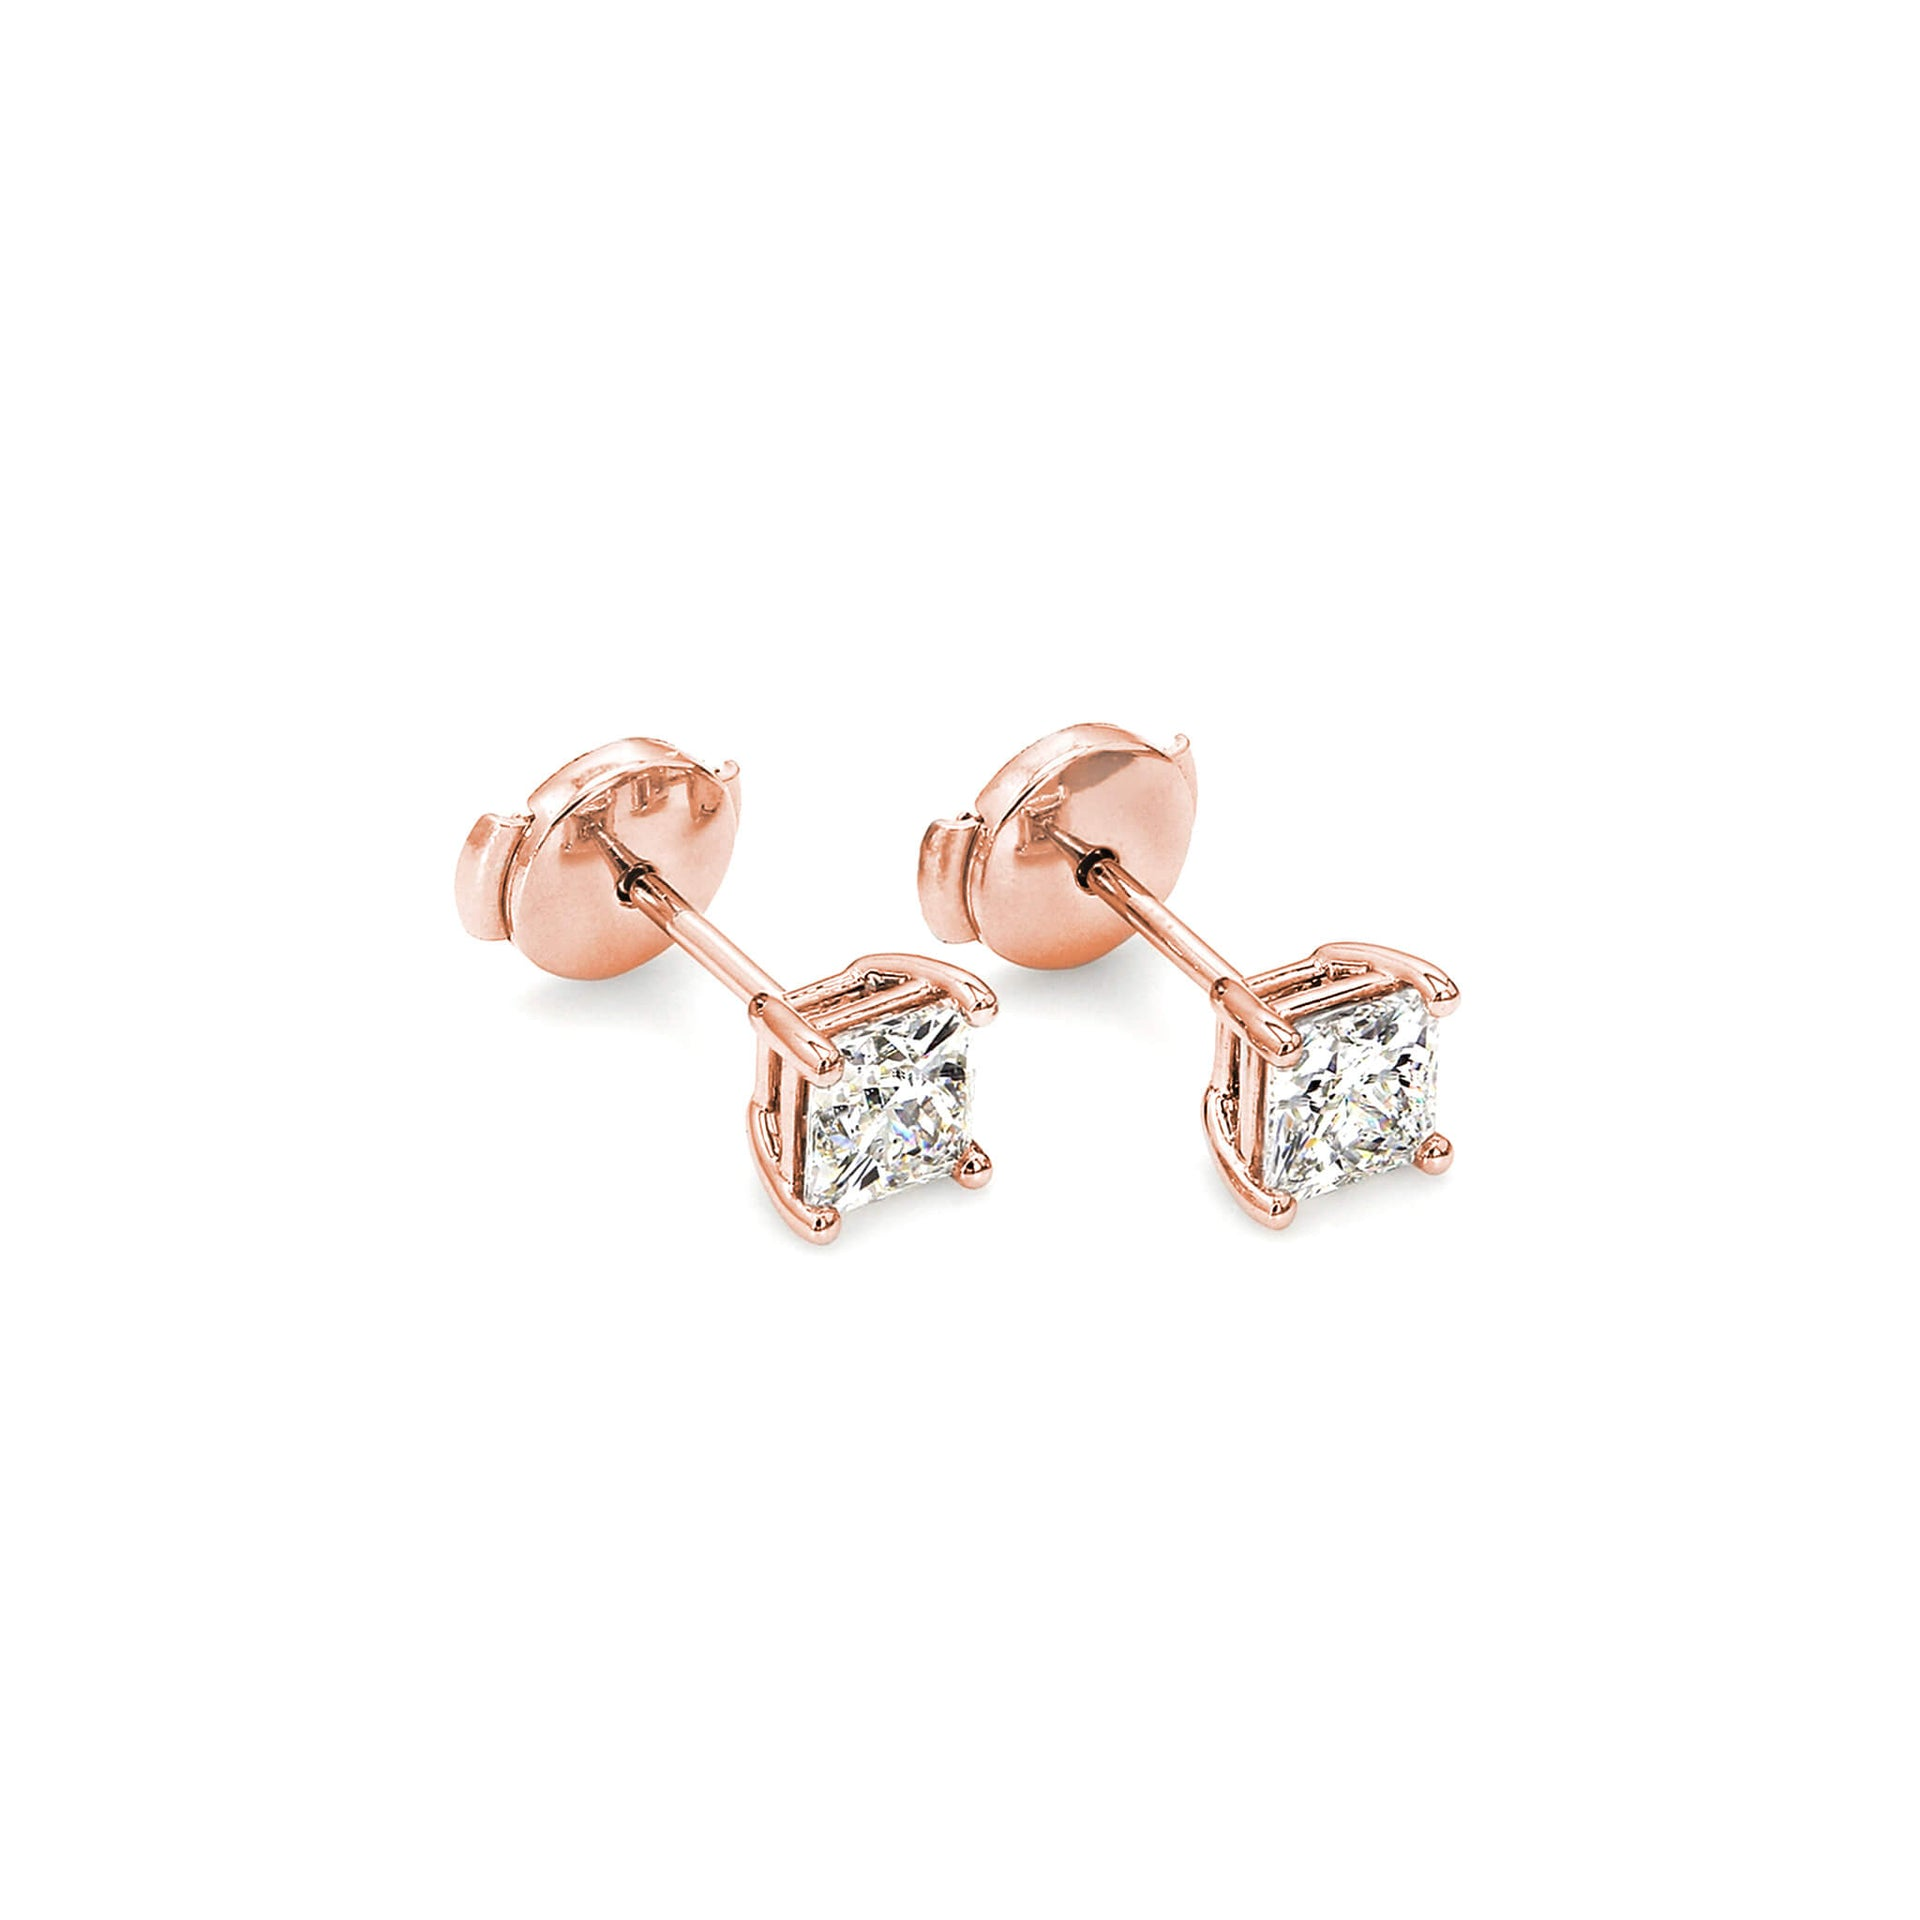 My Girl Classic Solitaire Diamond Stud Earrings in 18K Rose Gold 3D View